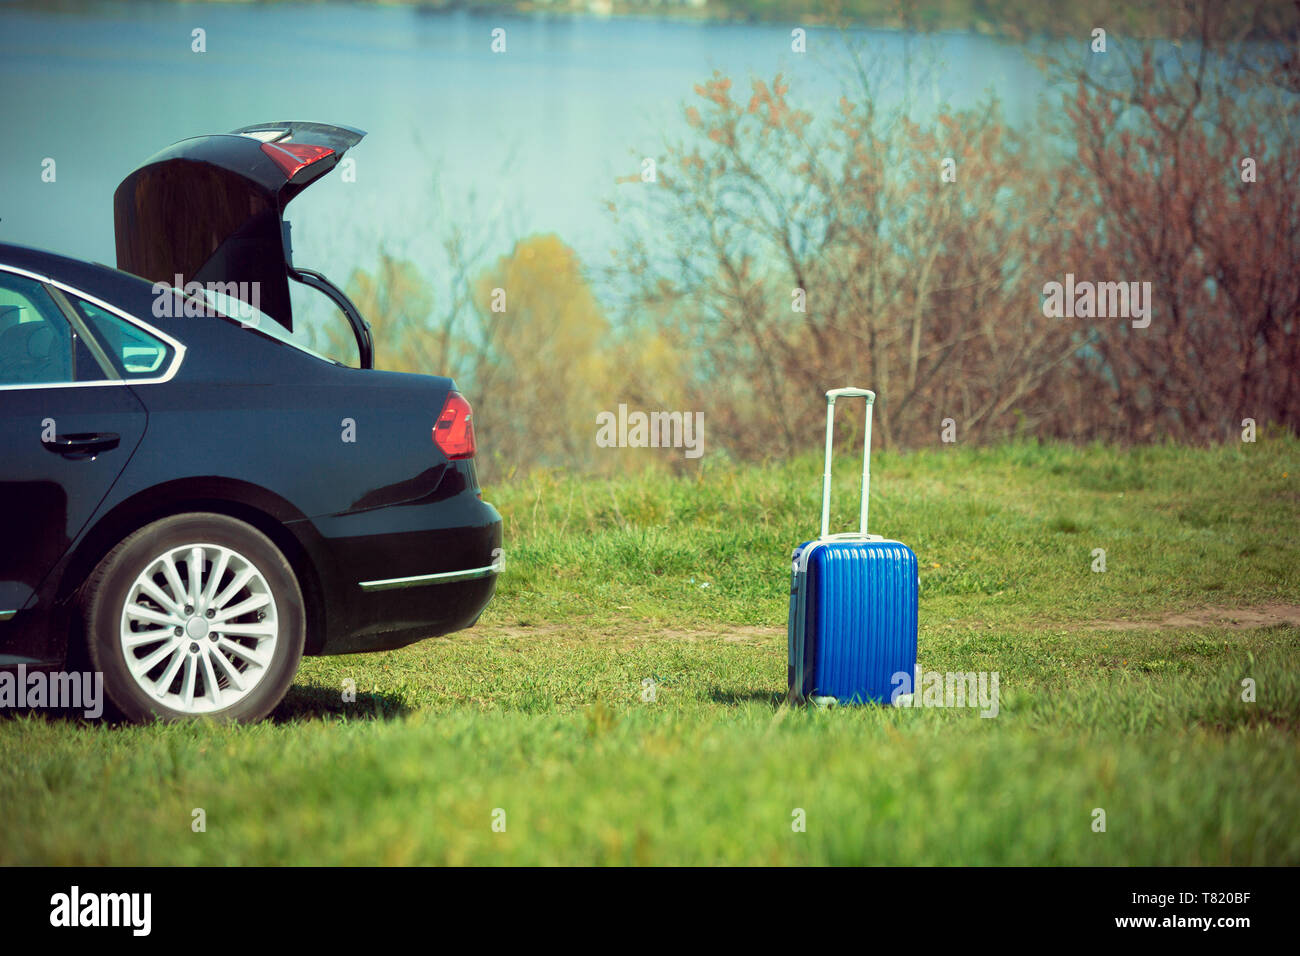 View of modern black car and blue suitcase on the river's side in sunny day. Preparing for weekend' trip or journey. Concept of summertime, resort, chilling. - Stock Image